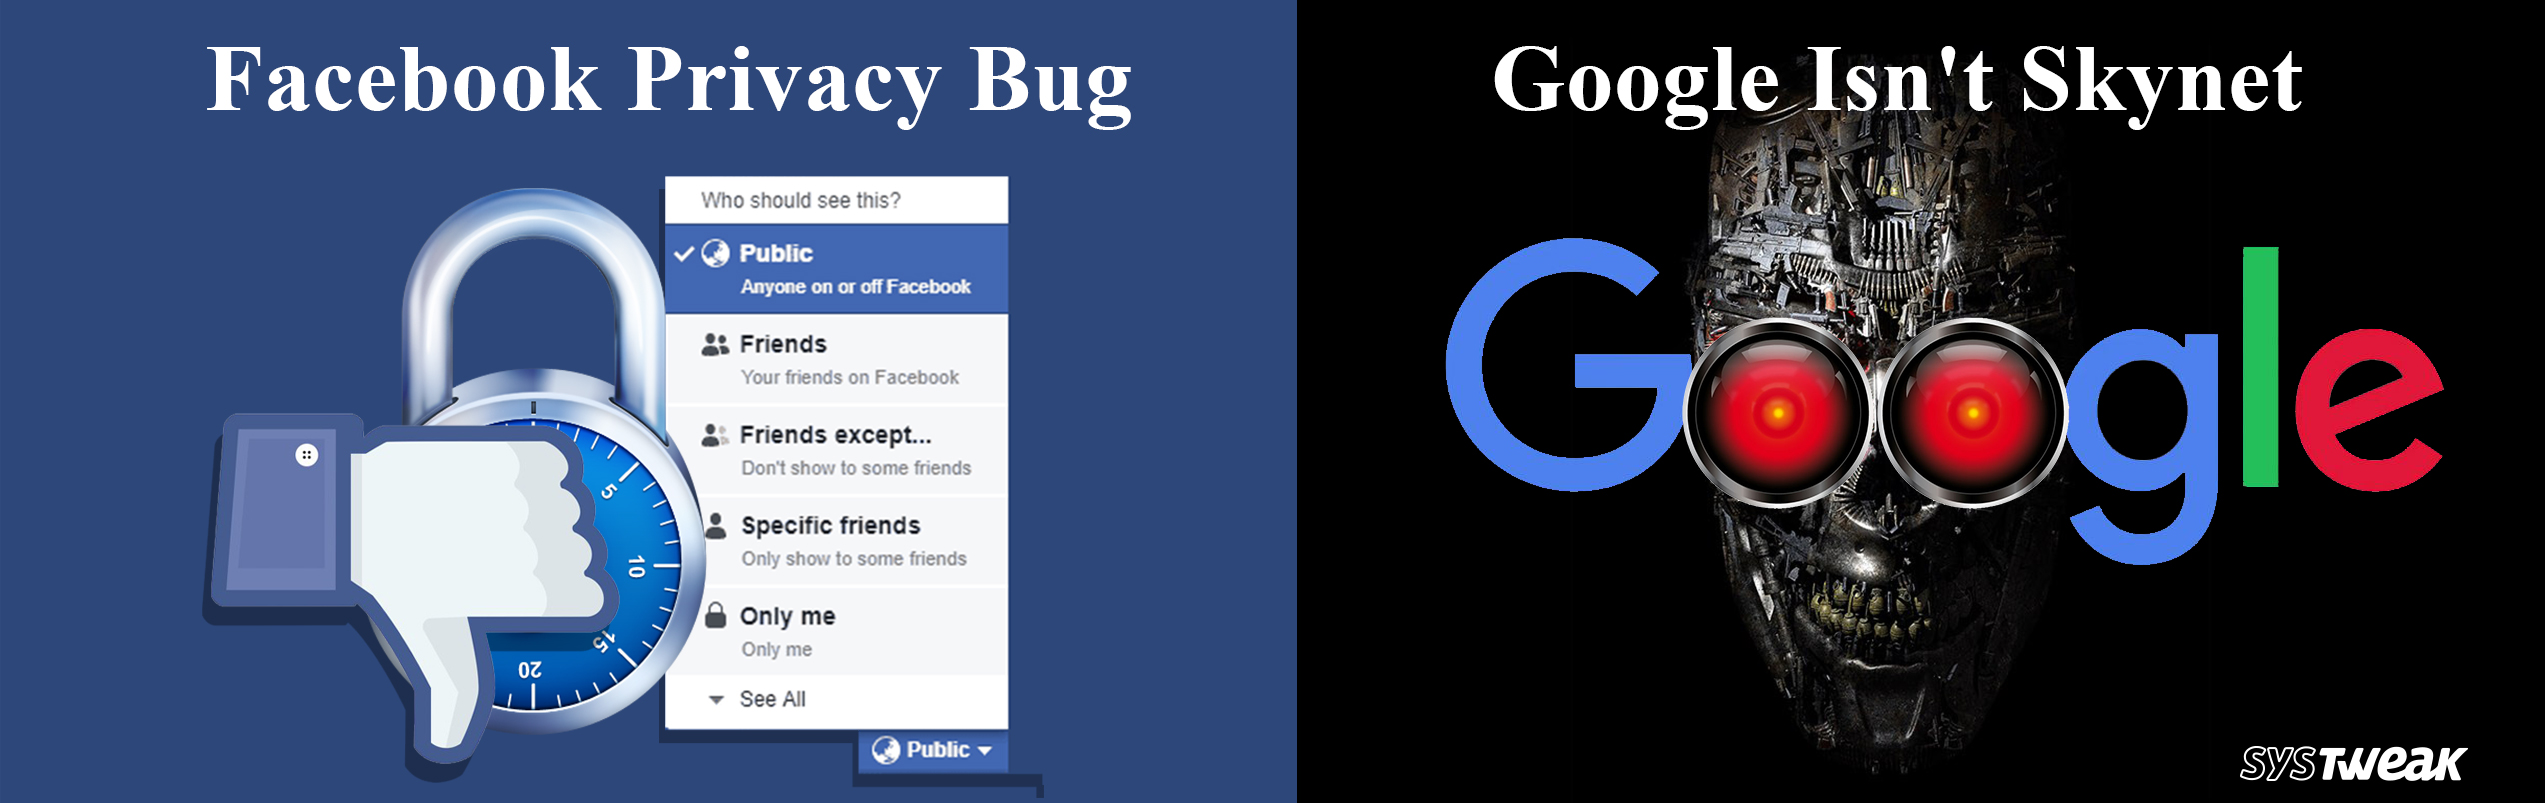 Newsletter: Facebook Warns Privacy Bug & Google Swears Not To Develop AI Weapons